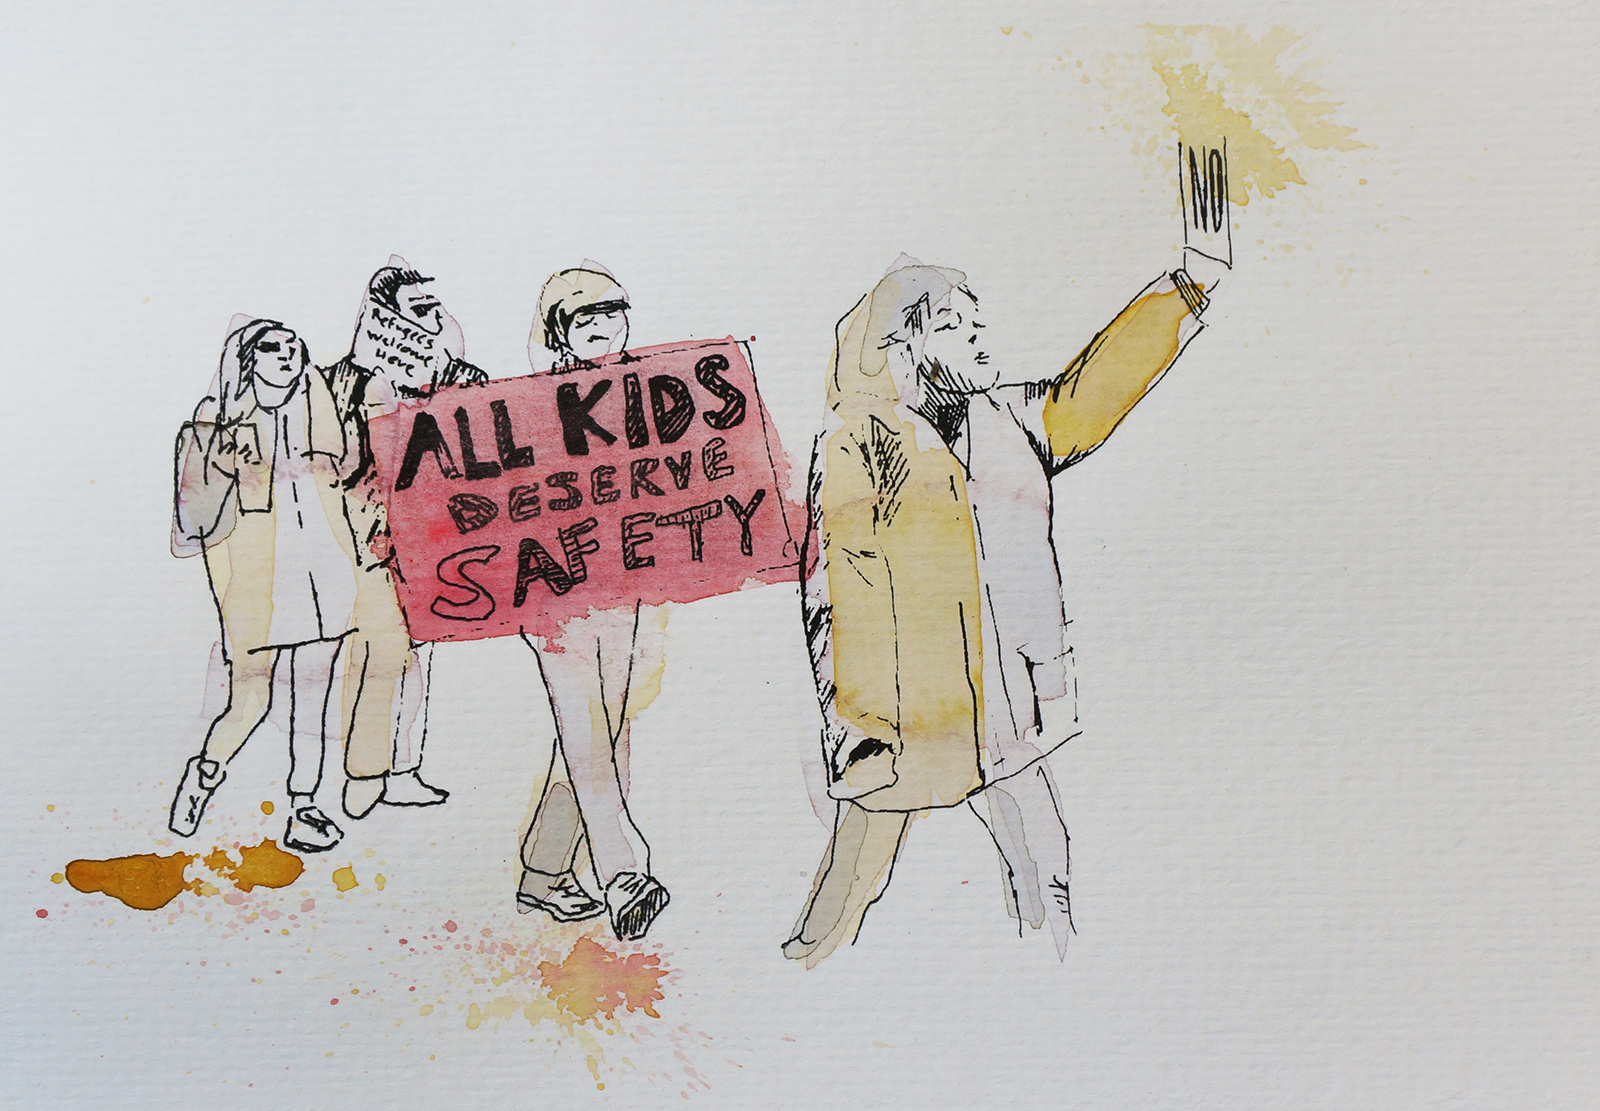 Ape_Bleakney_March Mixed Media - 'All Kids (1)', 6.5''x9.5'', Screen Print + Watercolor, 2018 copy.jpg